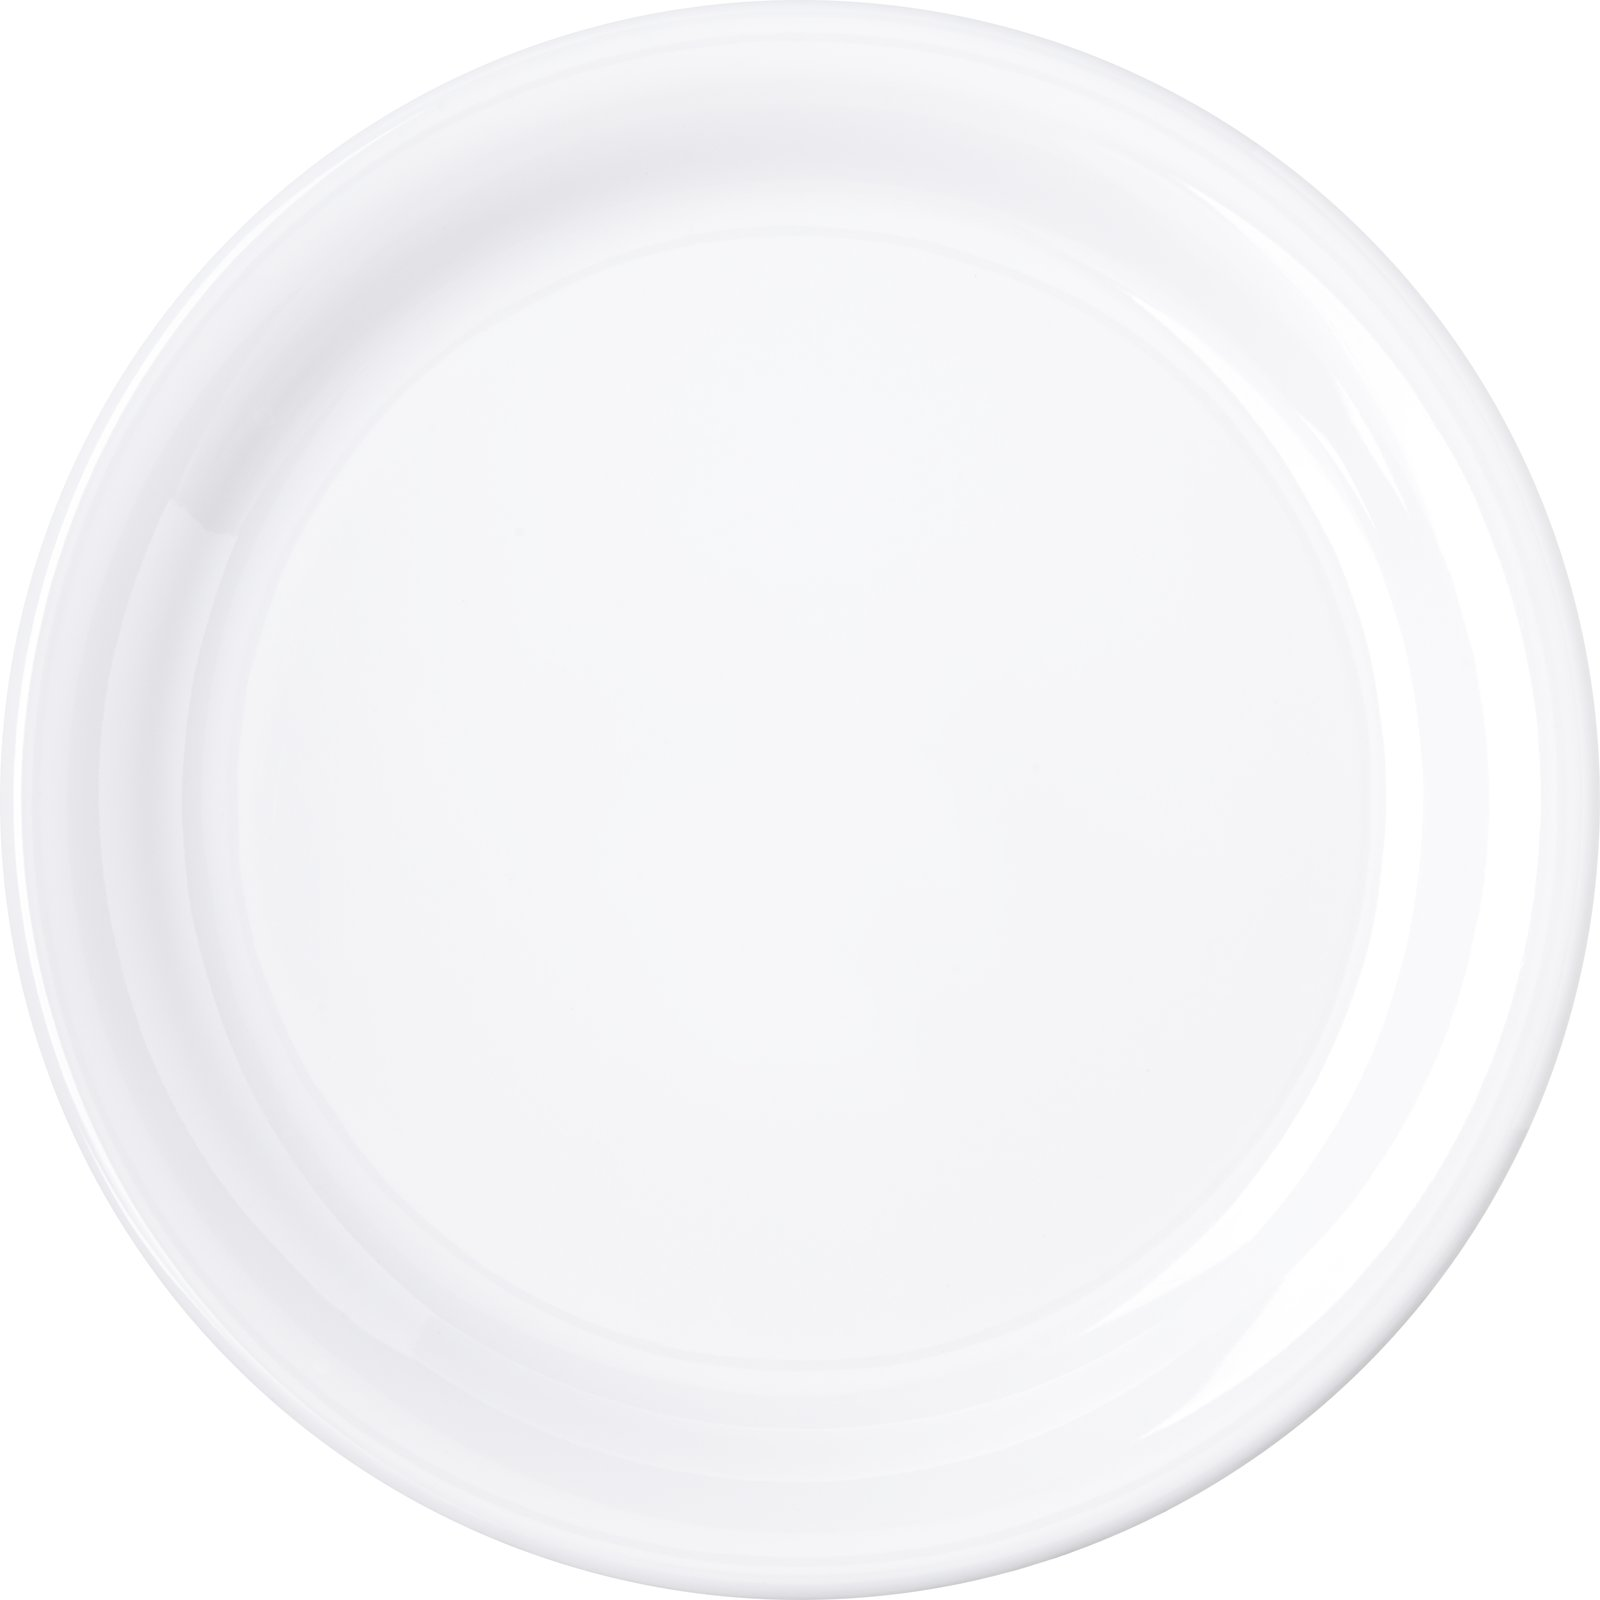 ... 4300402 - Durus® Melamine Narrow Rim Dinner Plate 9\  - White  sc 1 st  Carlisle FoodService Products & 4300402 - Durus® Melamine Narrow Rim Dinner Plate 9\